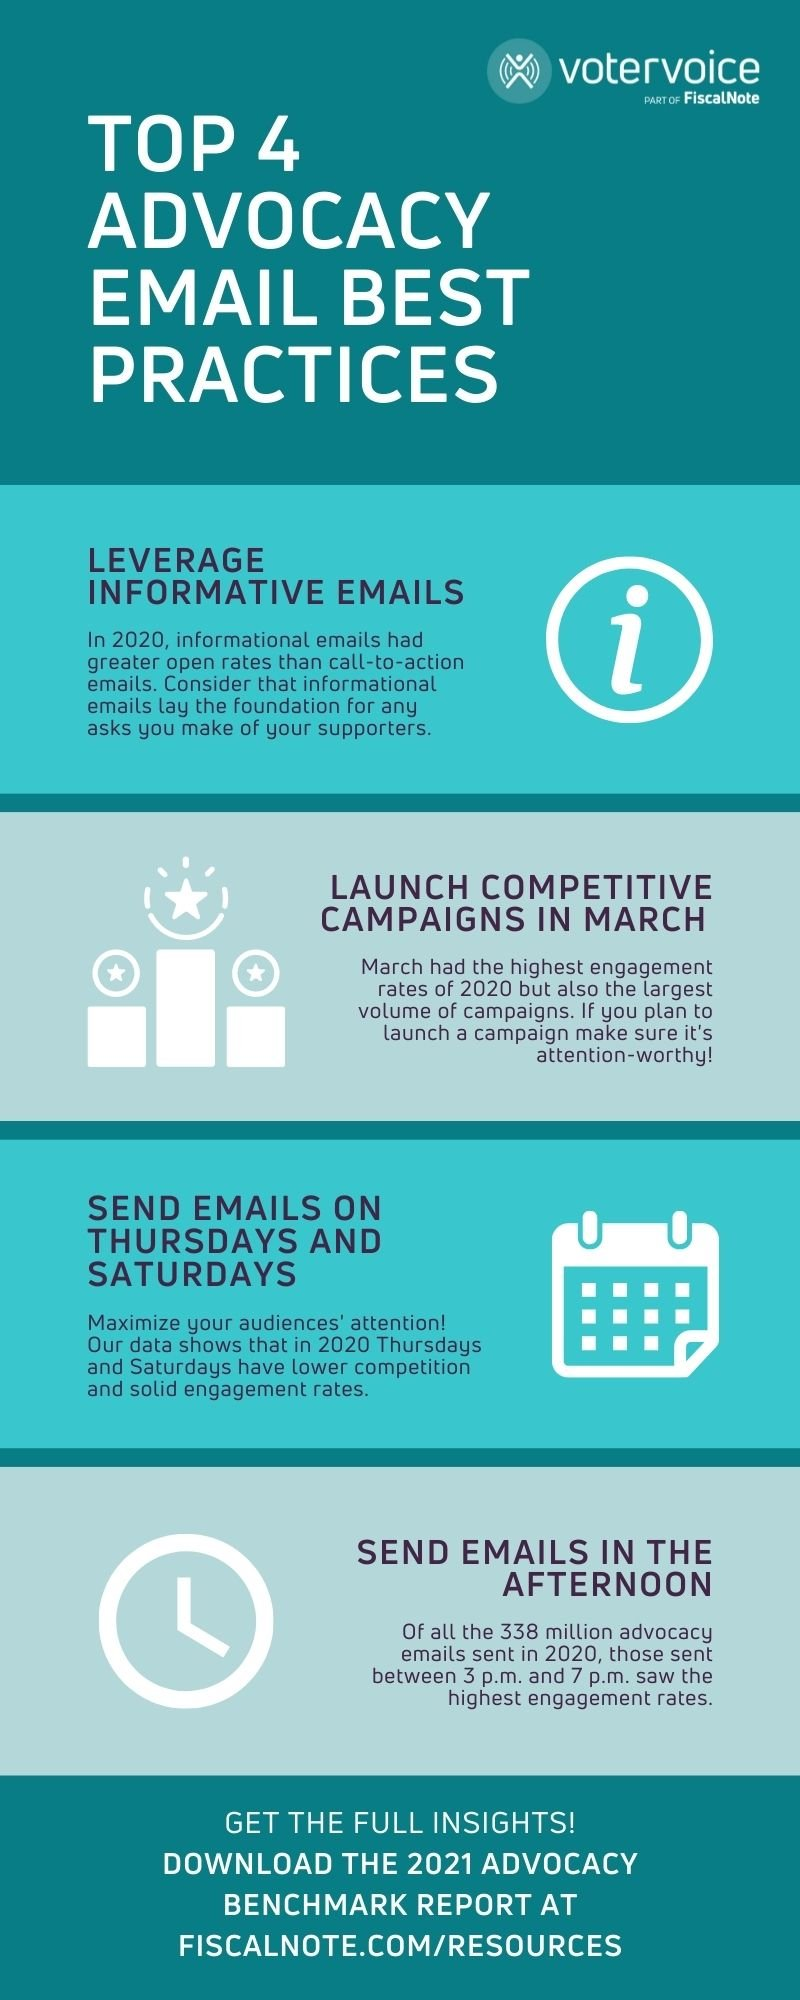 Top 4 Advocacy Email Best Practices